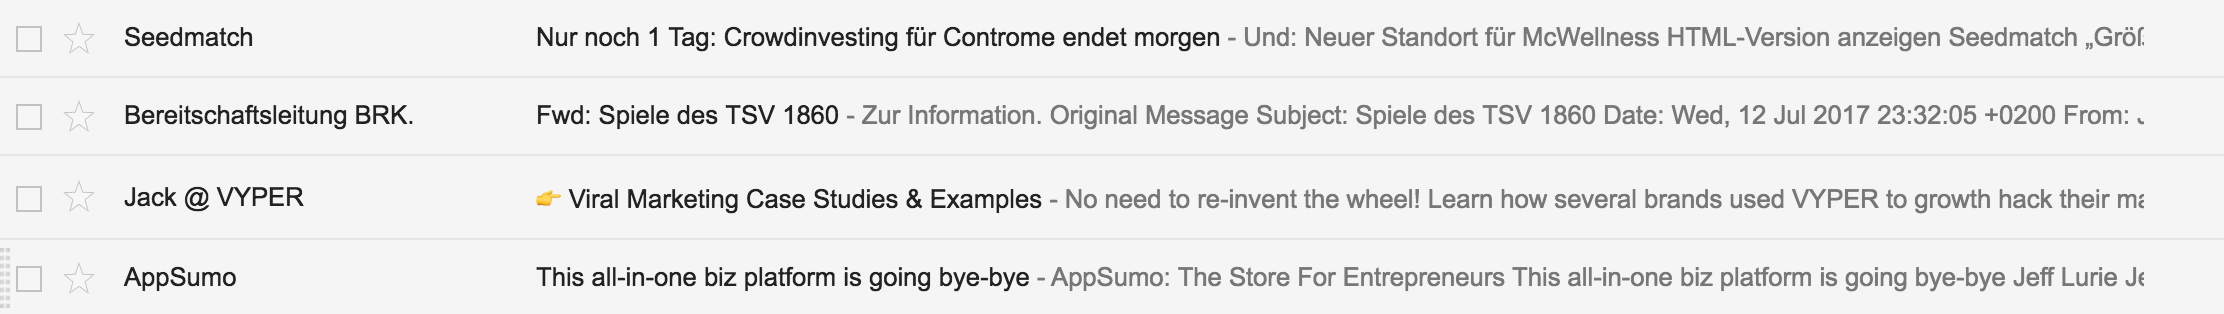 Emojis stand out in the email inbox